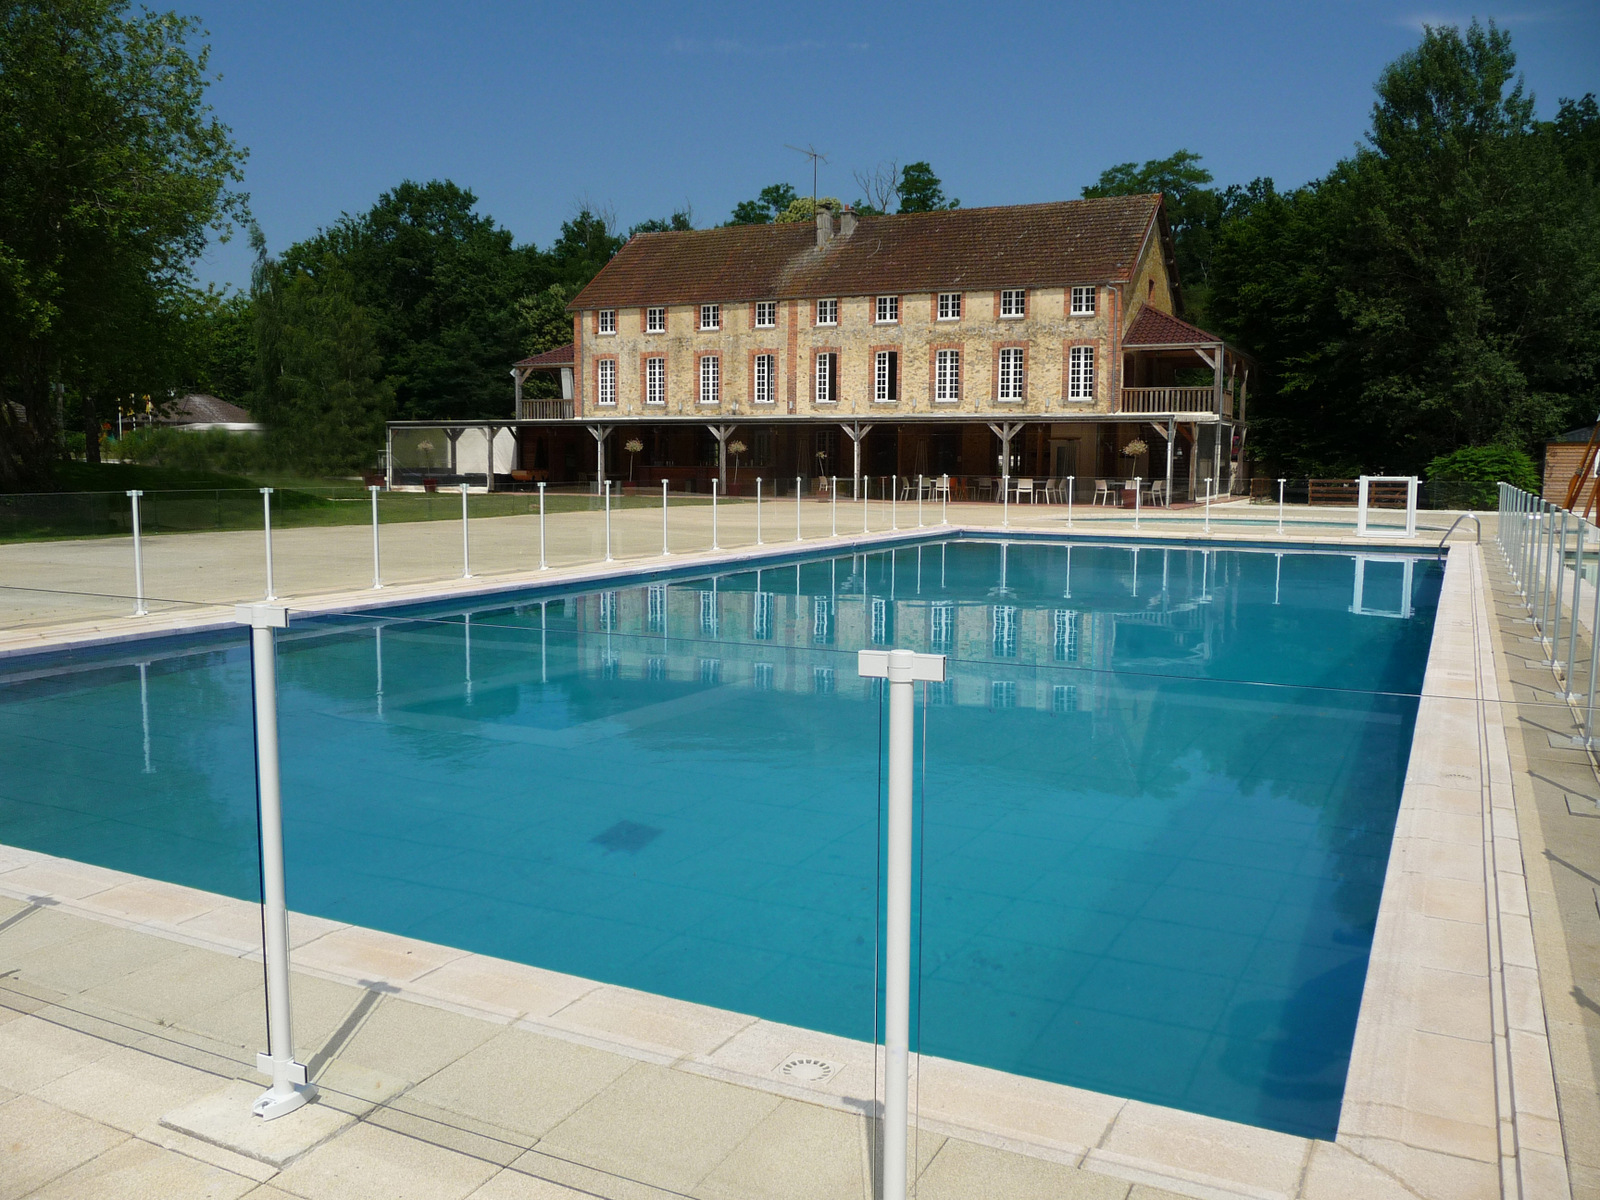 D co barriere piscine verre saint denis 27 barriere for Cloture pour piscine gonflable